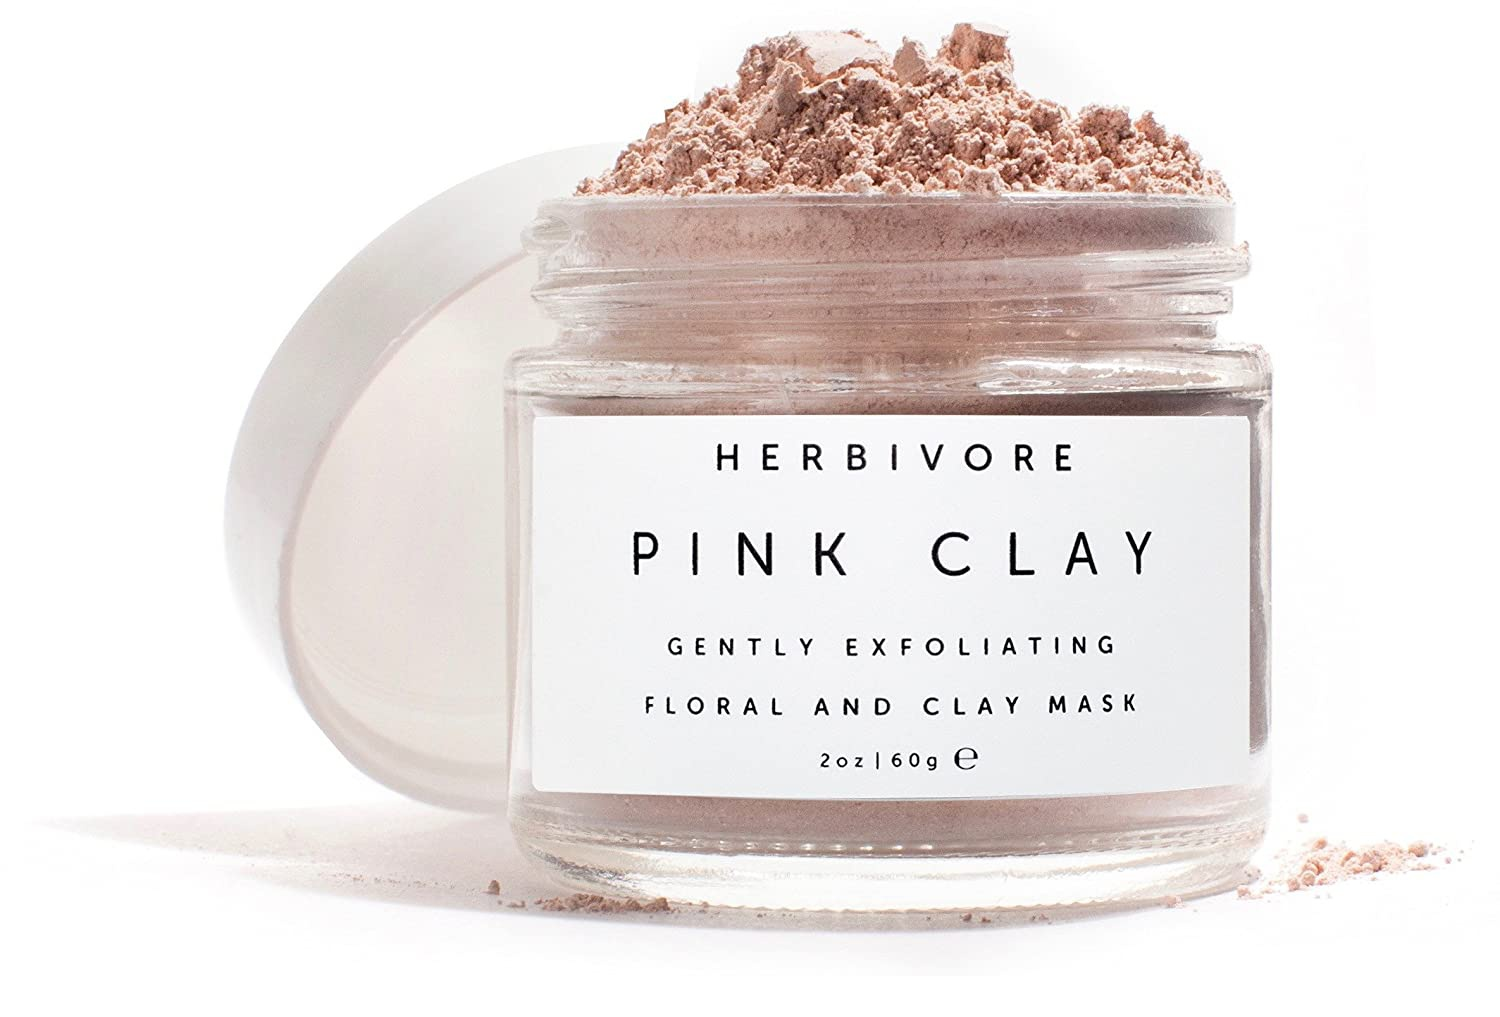 Herbivore Pink Clay Exfoliating Mask